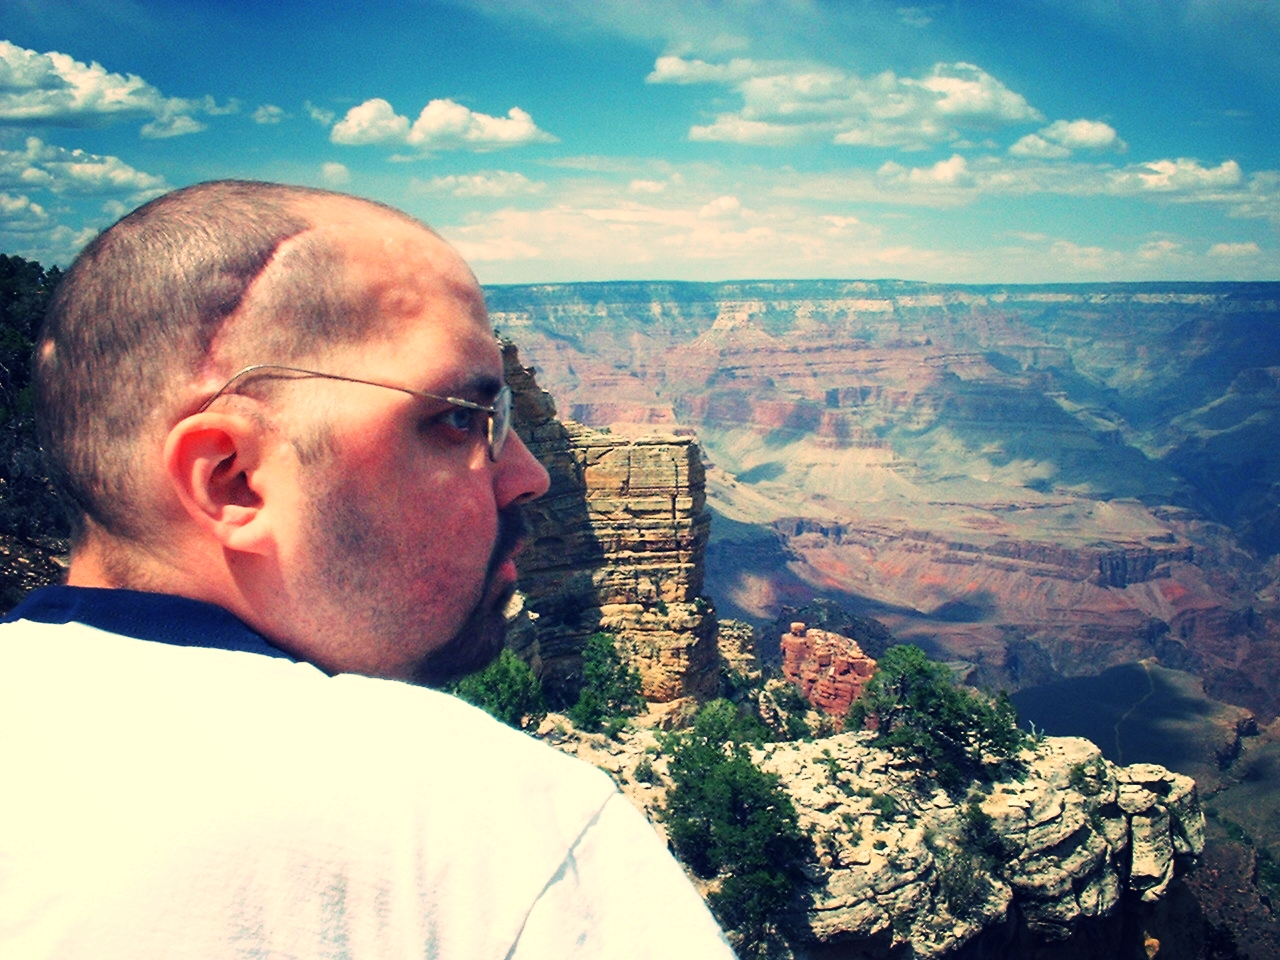 NEVER QUIT. With only a few months left to live, Chad decided his last trip would be to the Grand Canyon in July 2003.